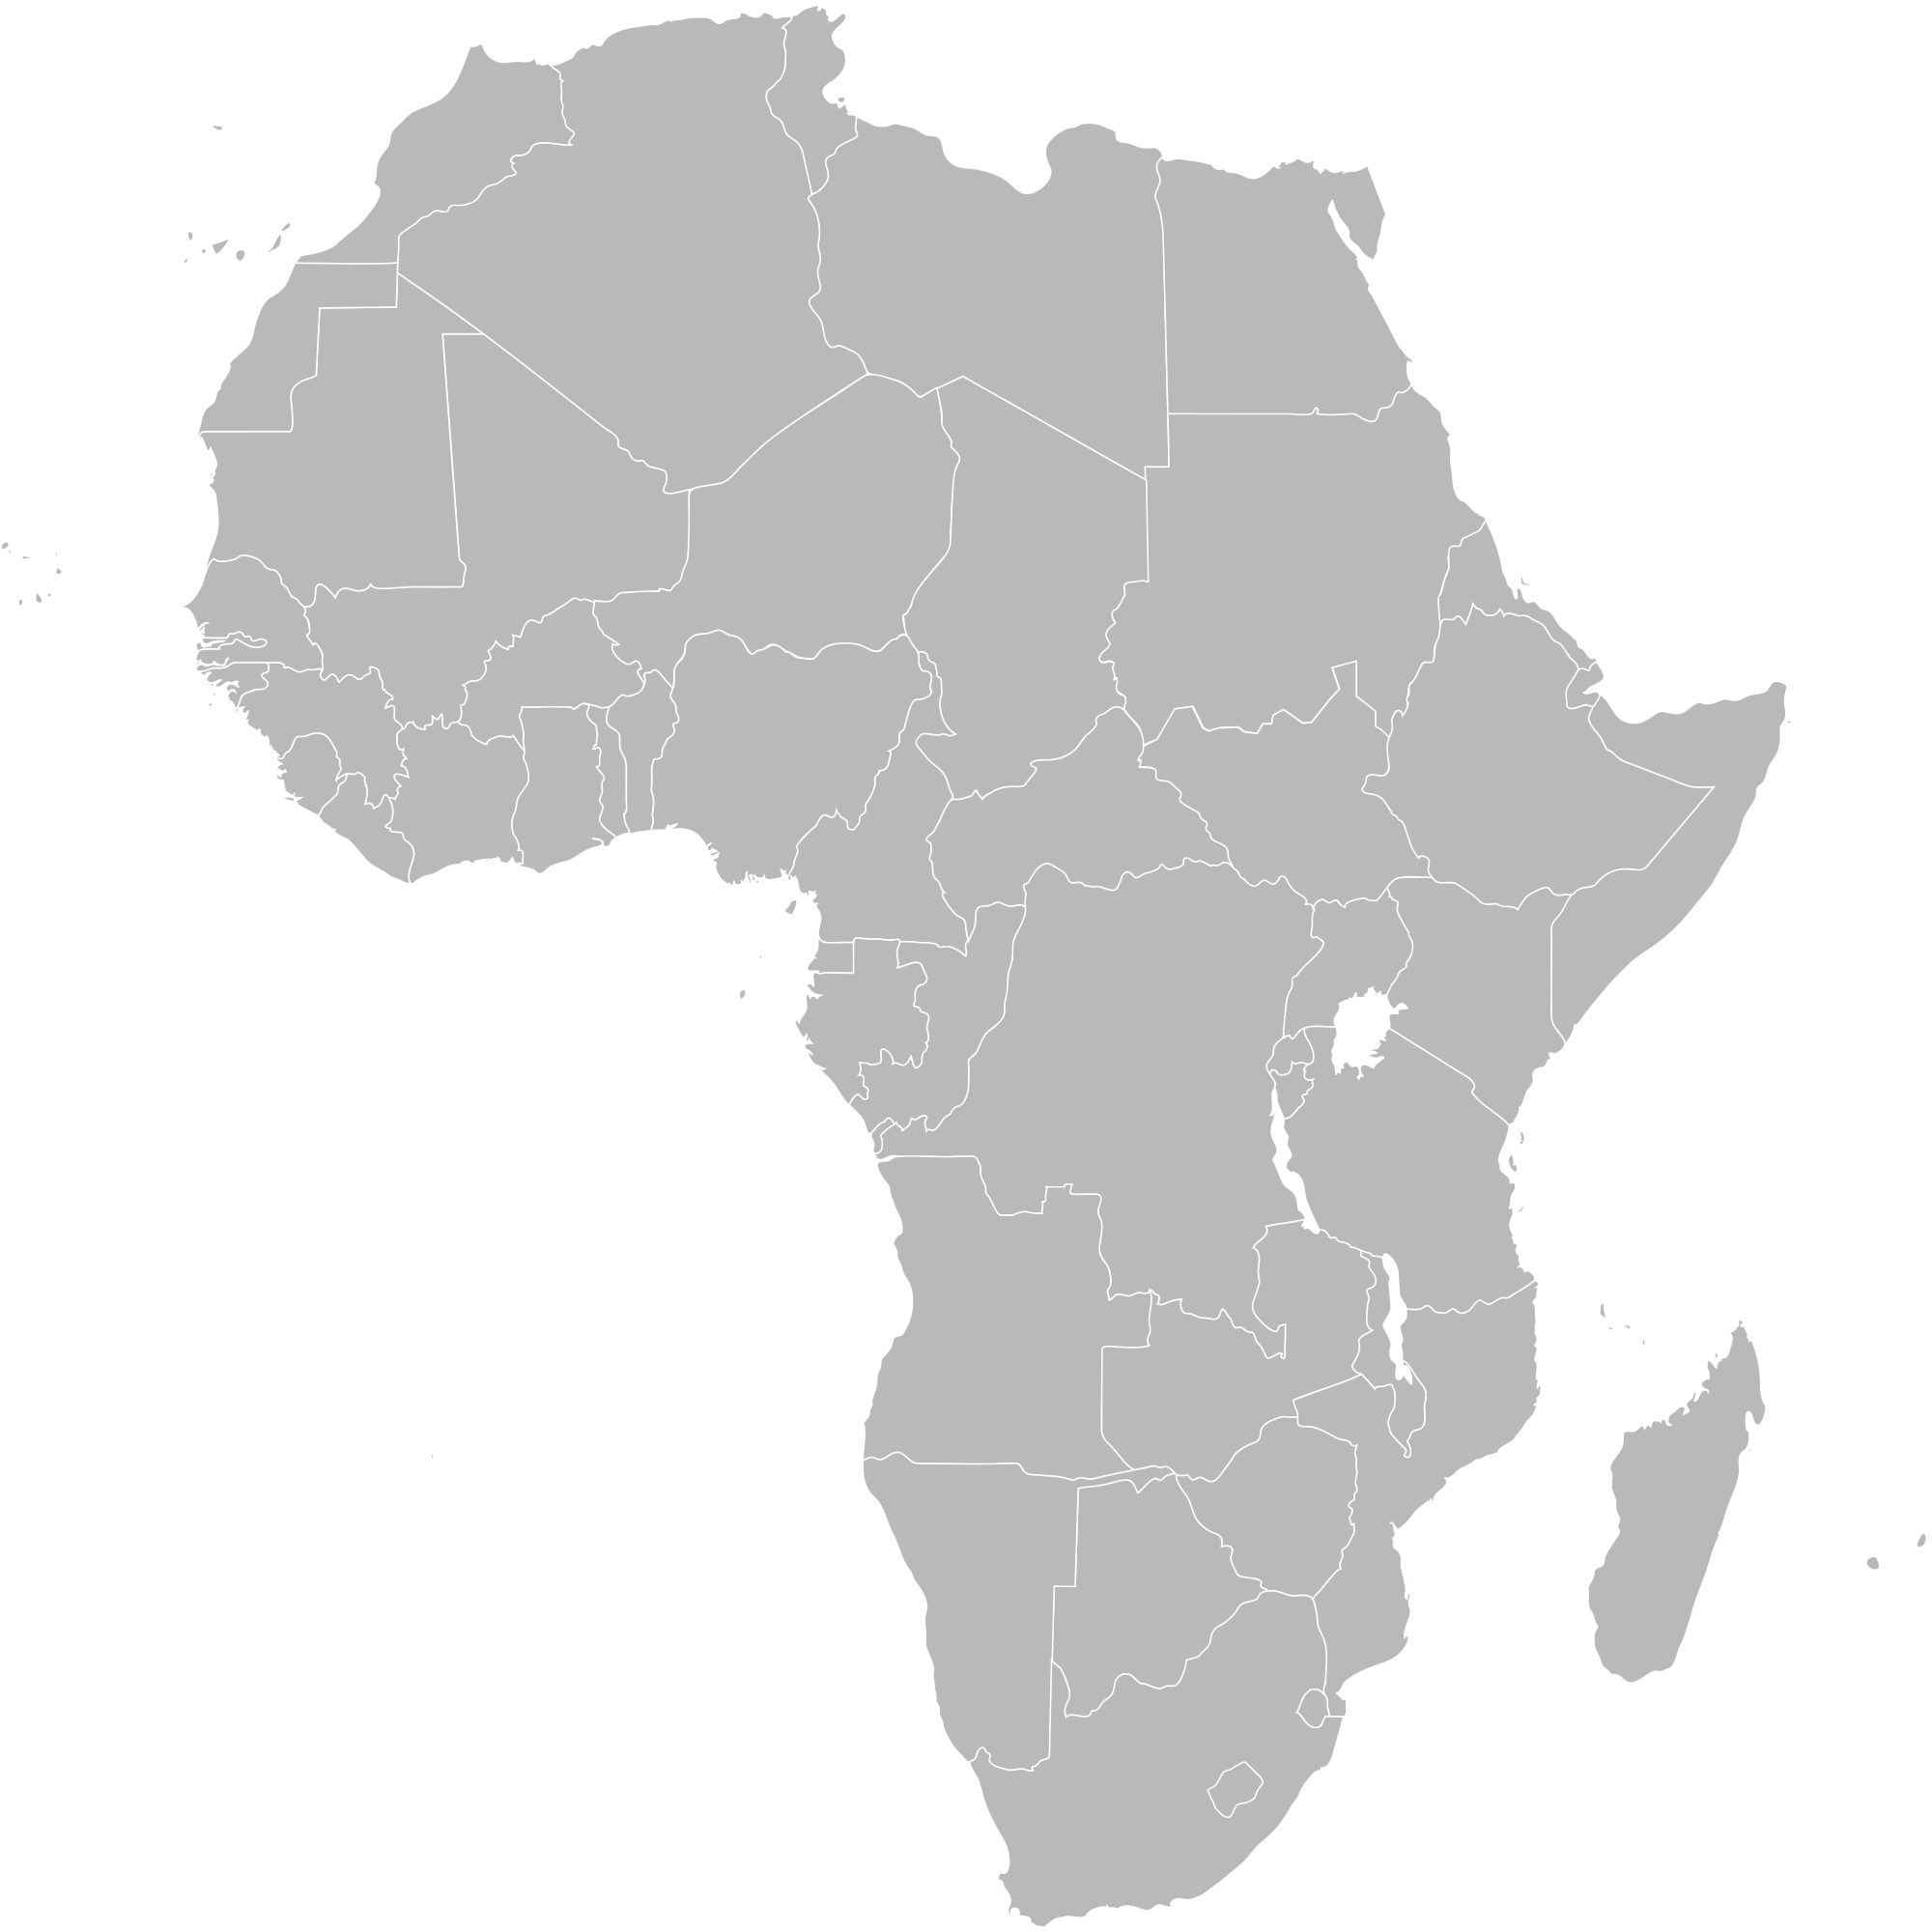 File blankmap wikimedia commons. Africa png image banner royalty free